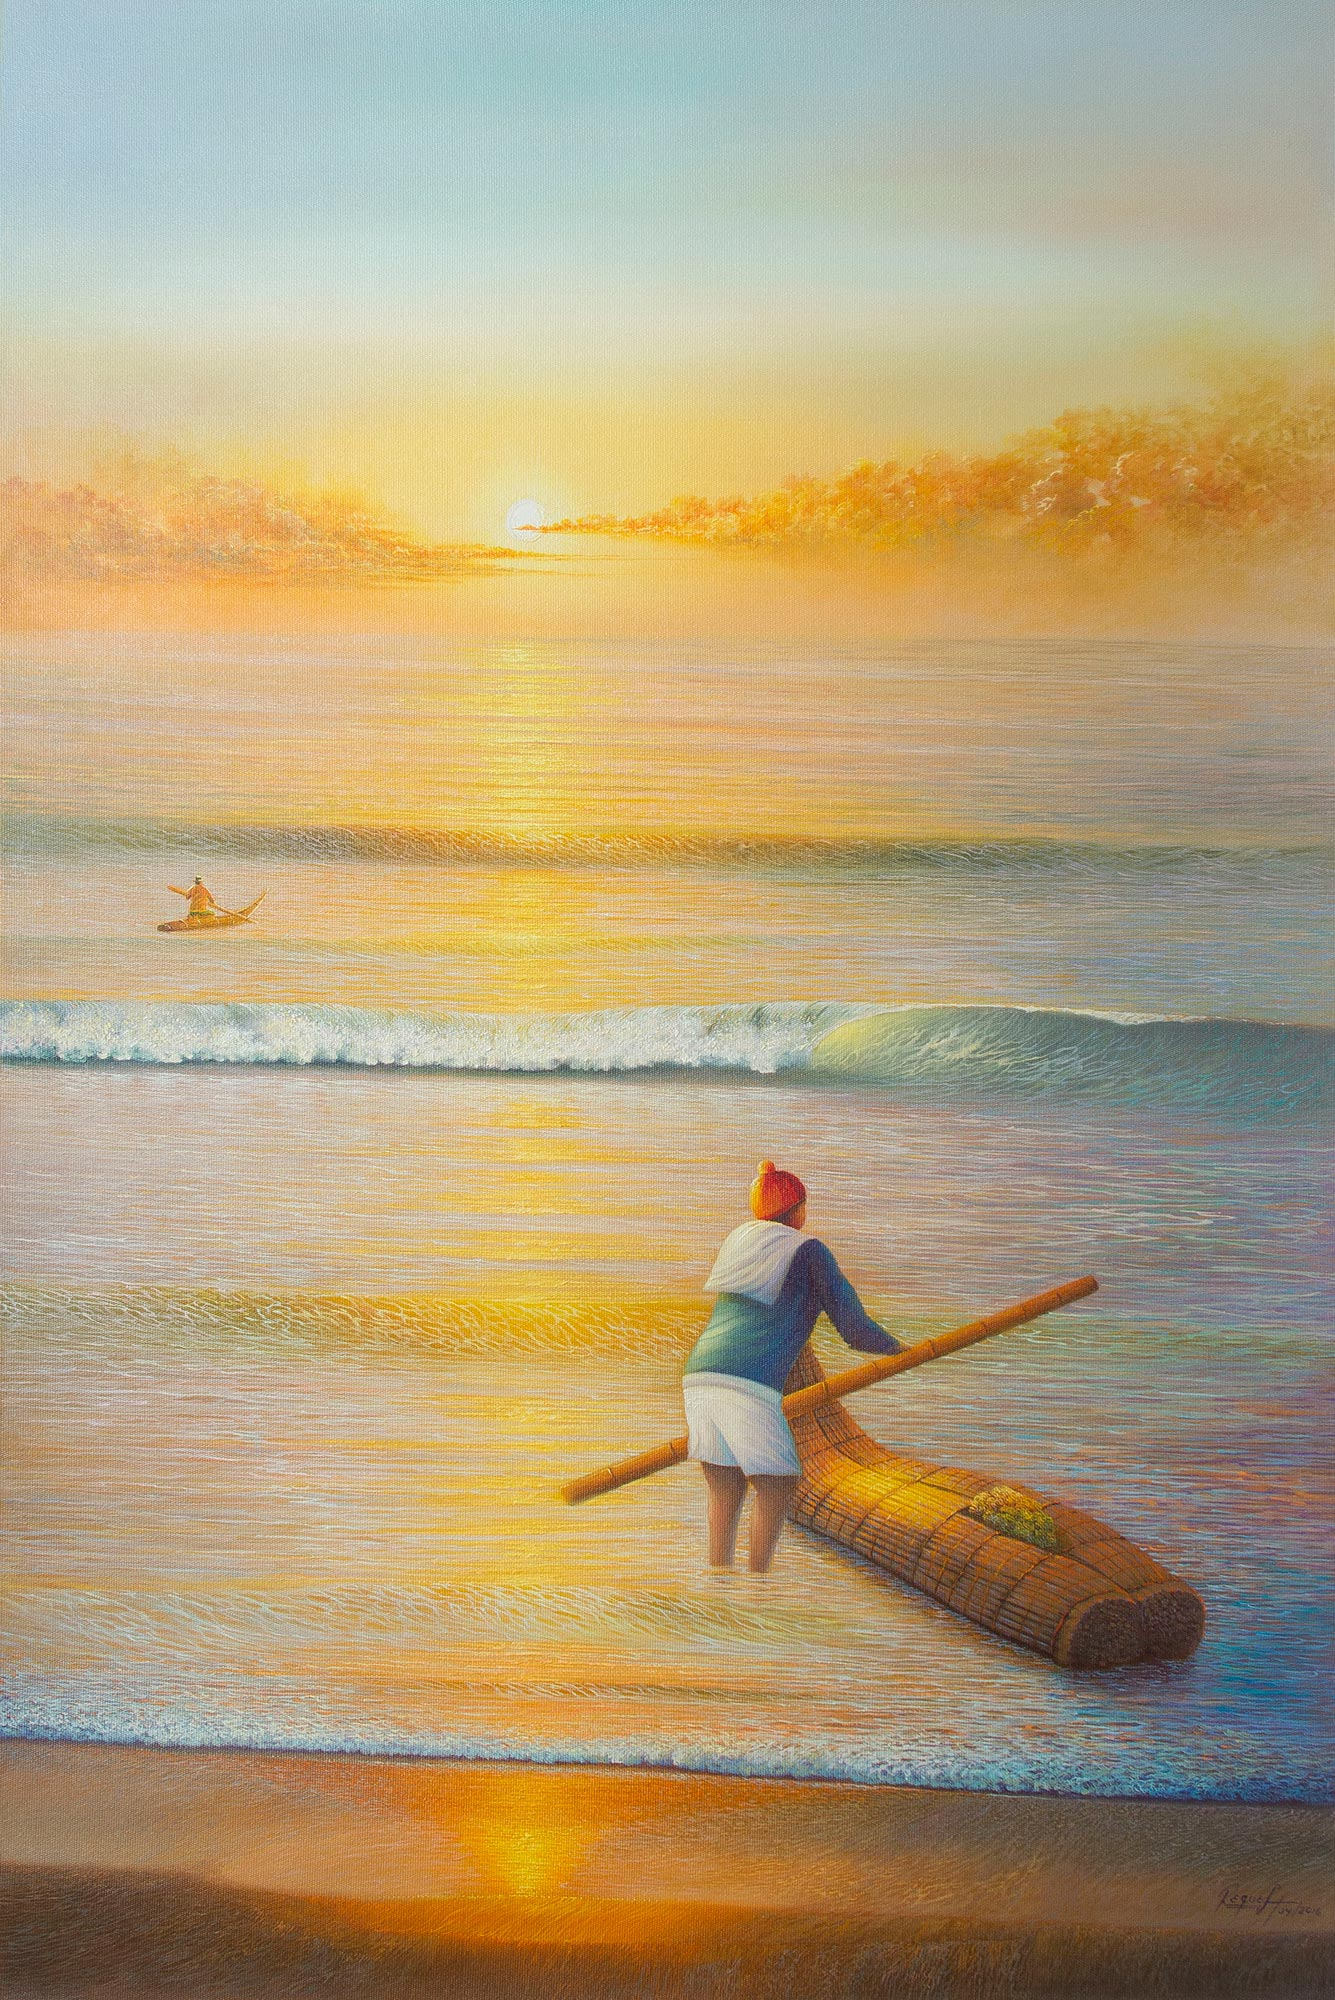 Realist Painting of Fishermen and the Sea from Peru, 'Sunset Poem' Selecting the Perfect Painting for your Home